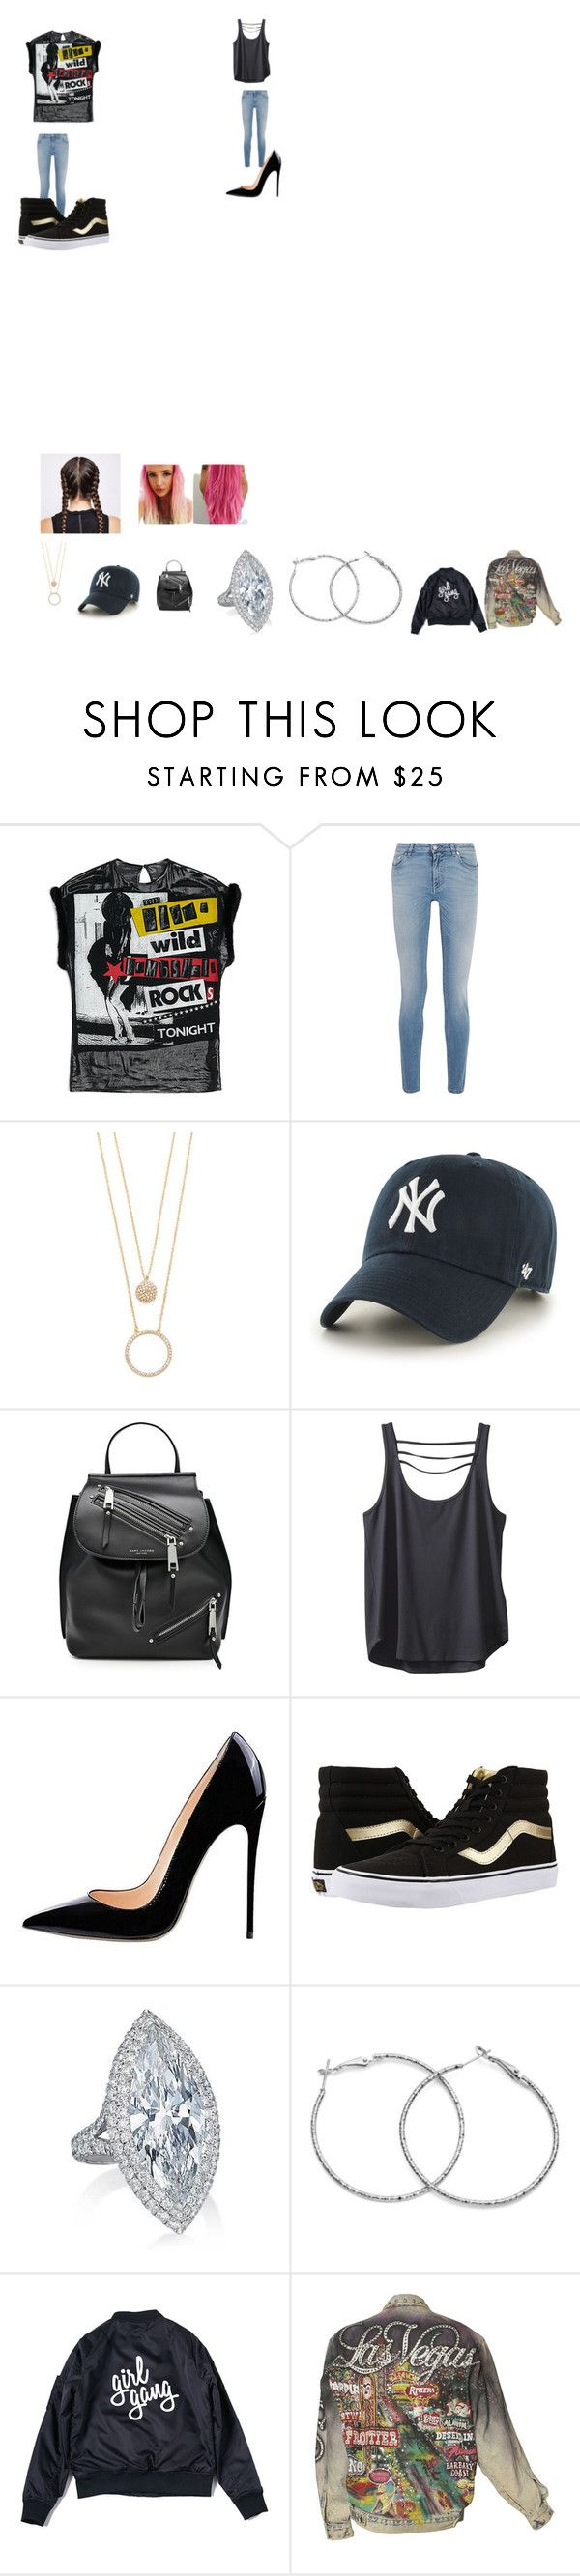 """Los vages tour outfits"" by jordan-summers ❤ liked on Polyvore featuring Givenchy, Kate Spade, '47 Brand, Marc Jacobs, Kavu, Vans and Ultimate"